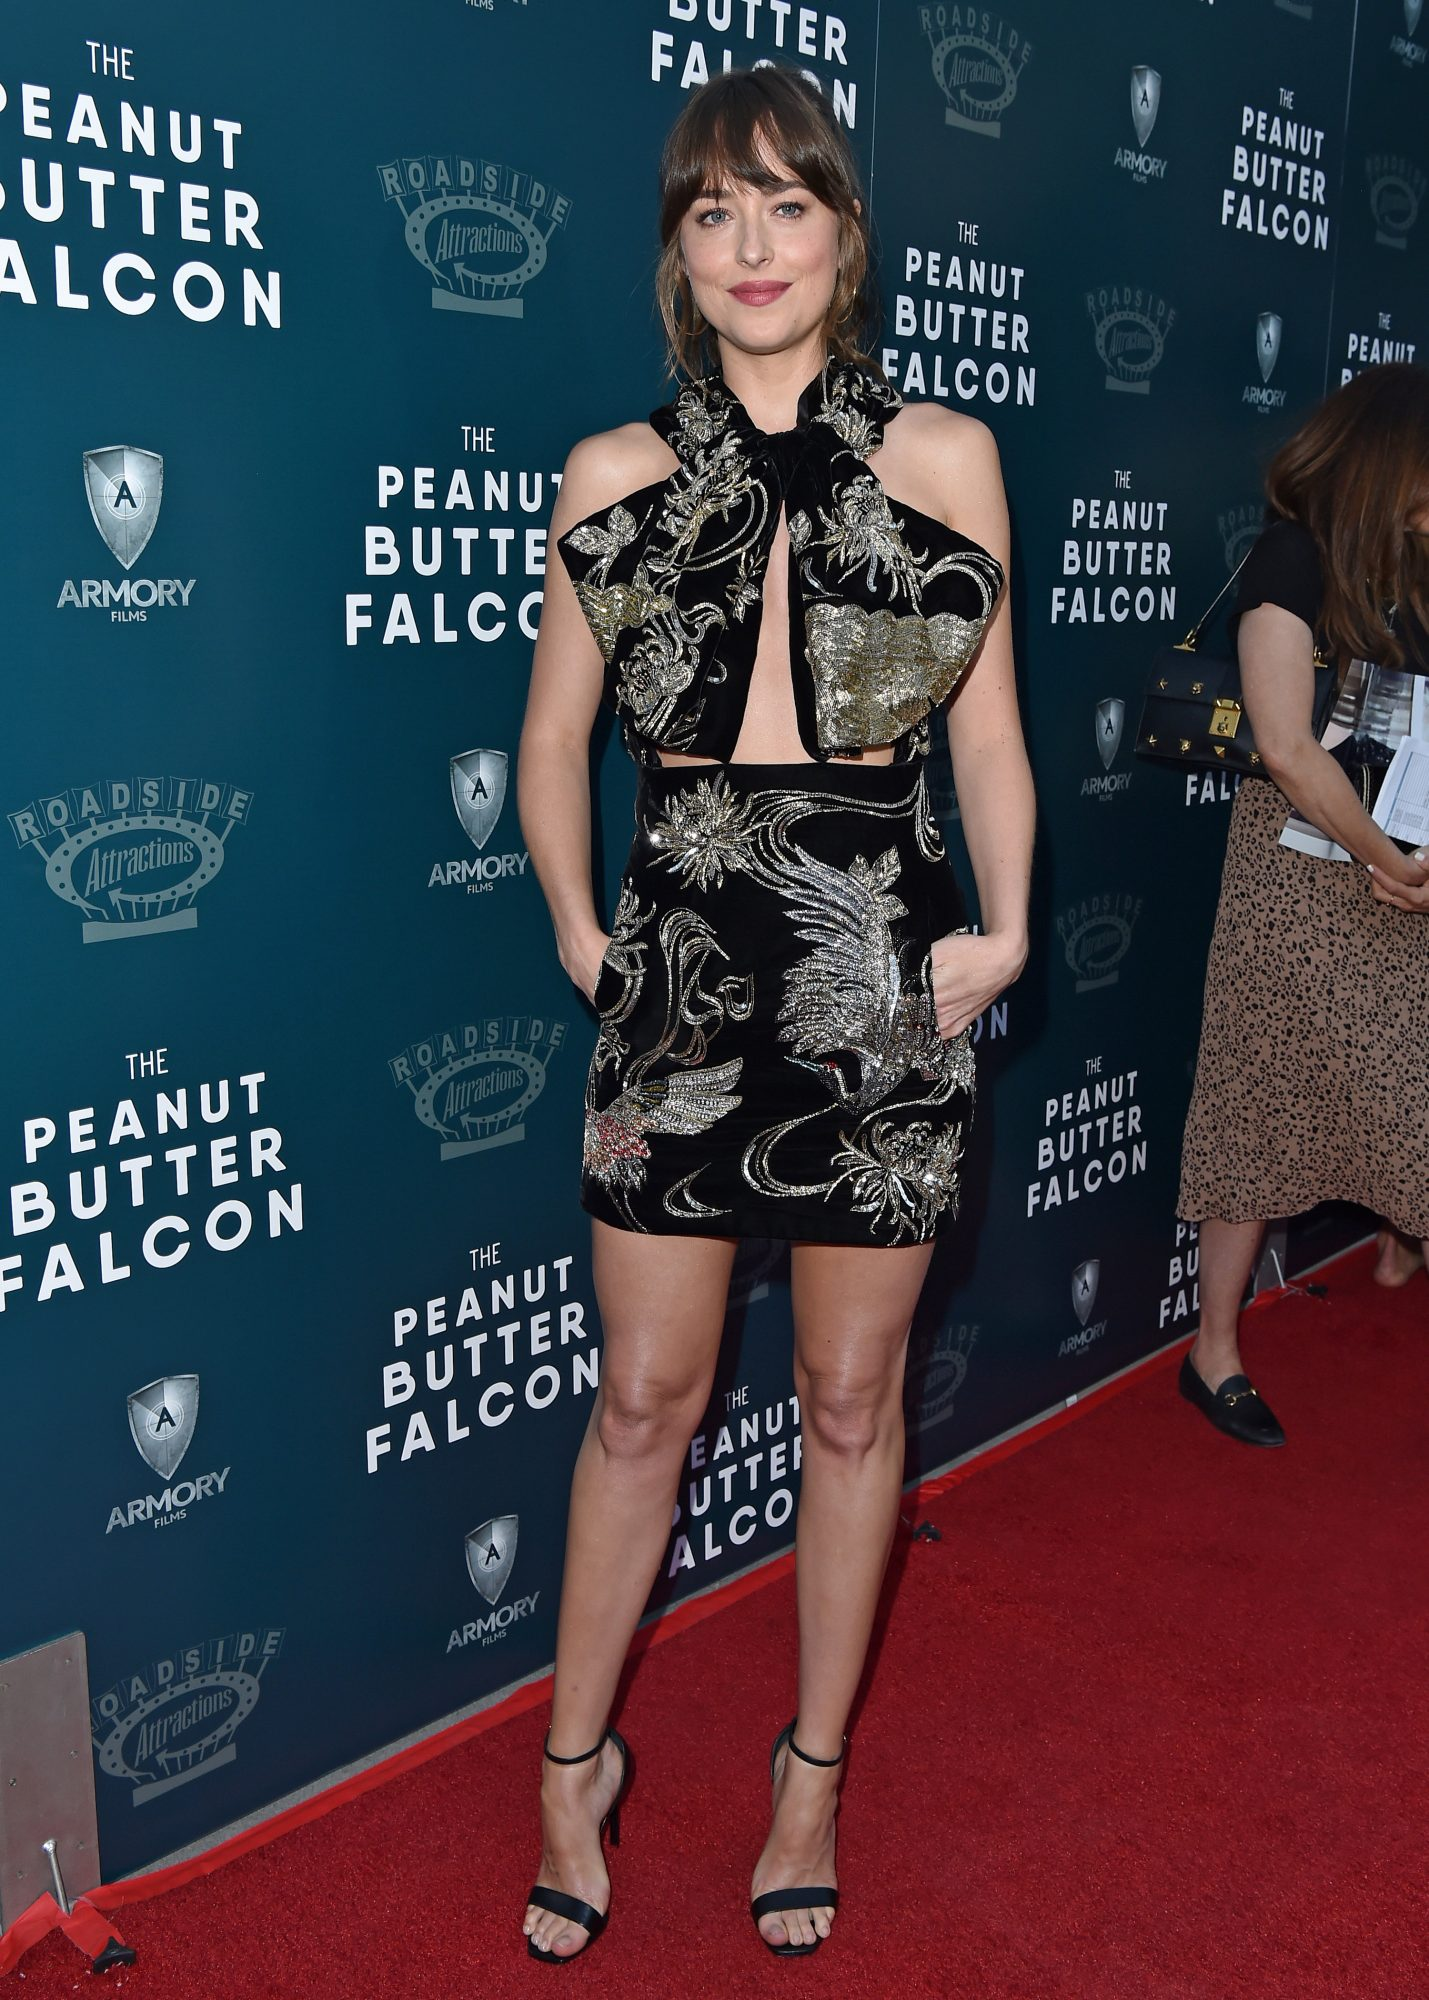 LA Special Screening Of Roadside Attractions'  The Peanut Butter Falcon  - Arrivals